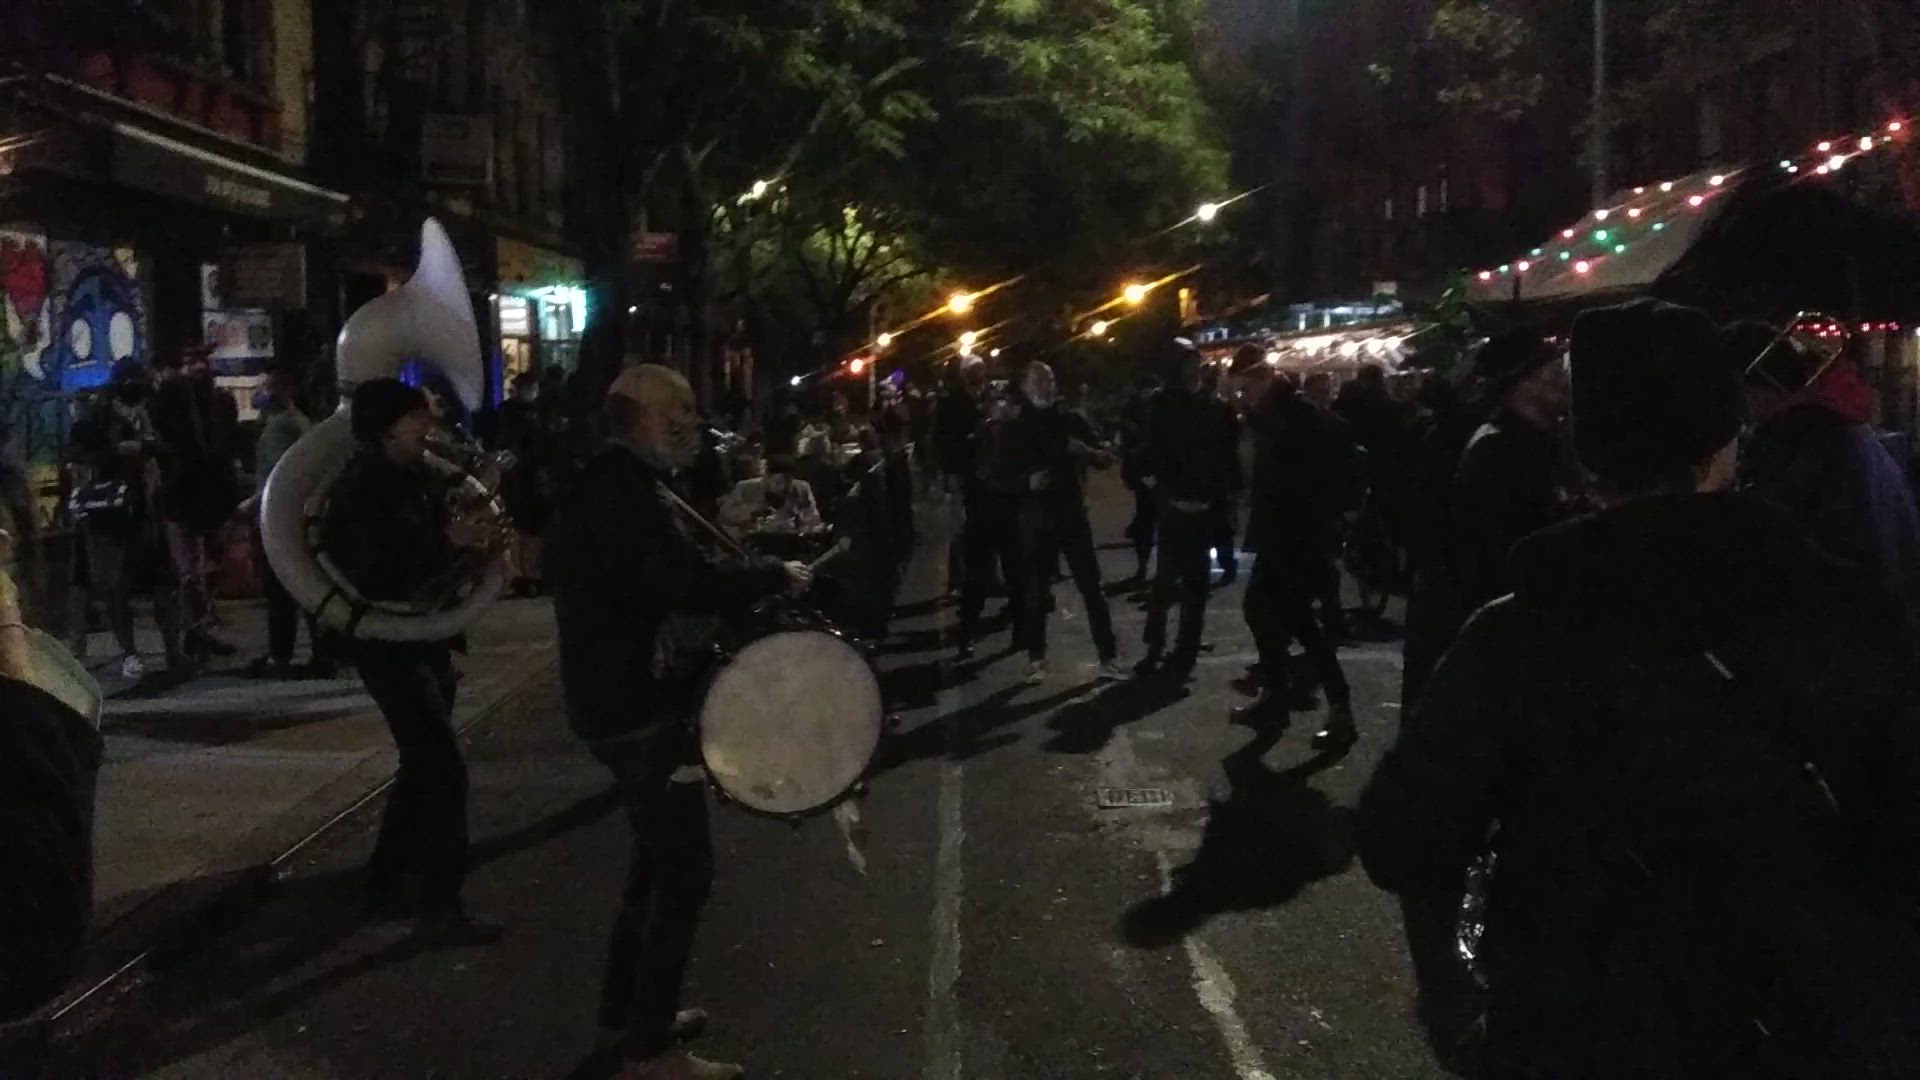 Underground Horns after Halloween in Tompkins Square Park!